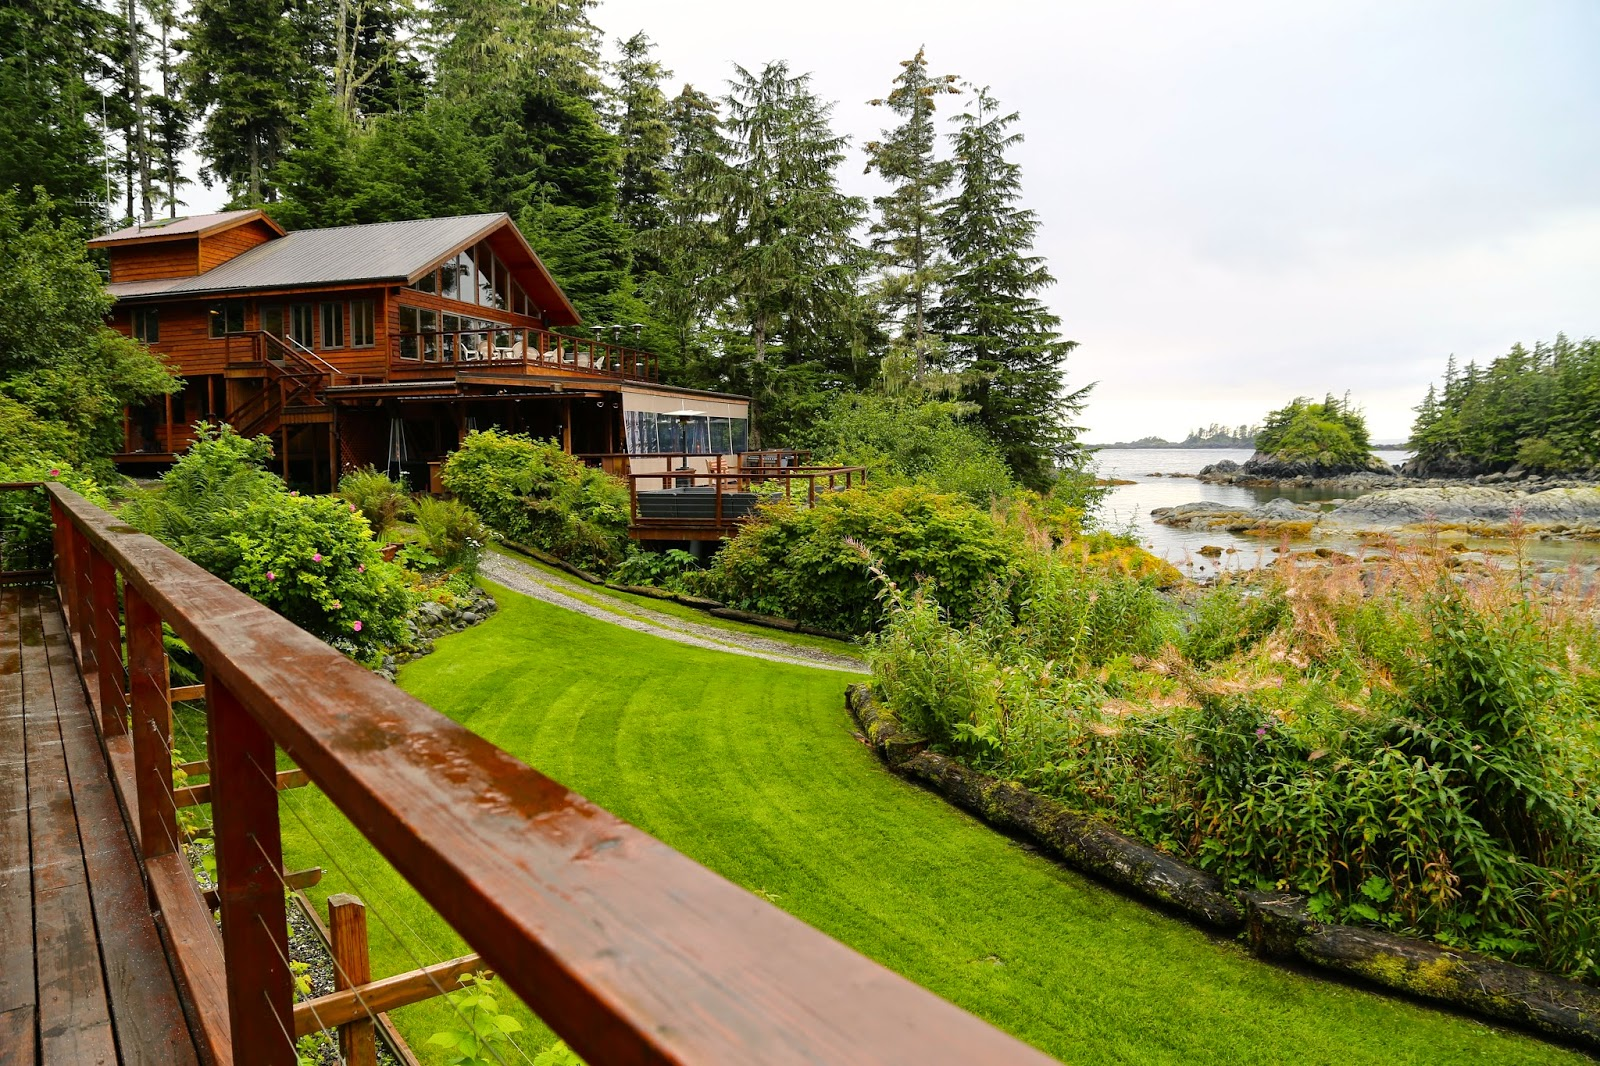 Talon fishing lodge, sitka, alaska